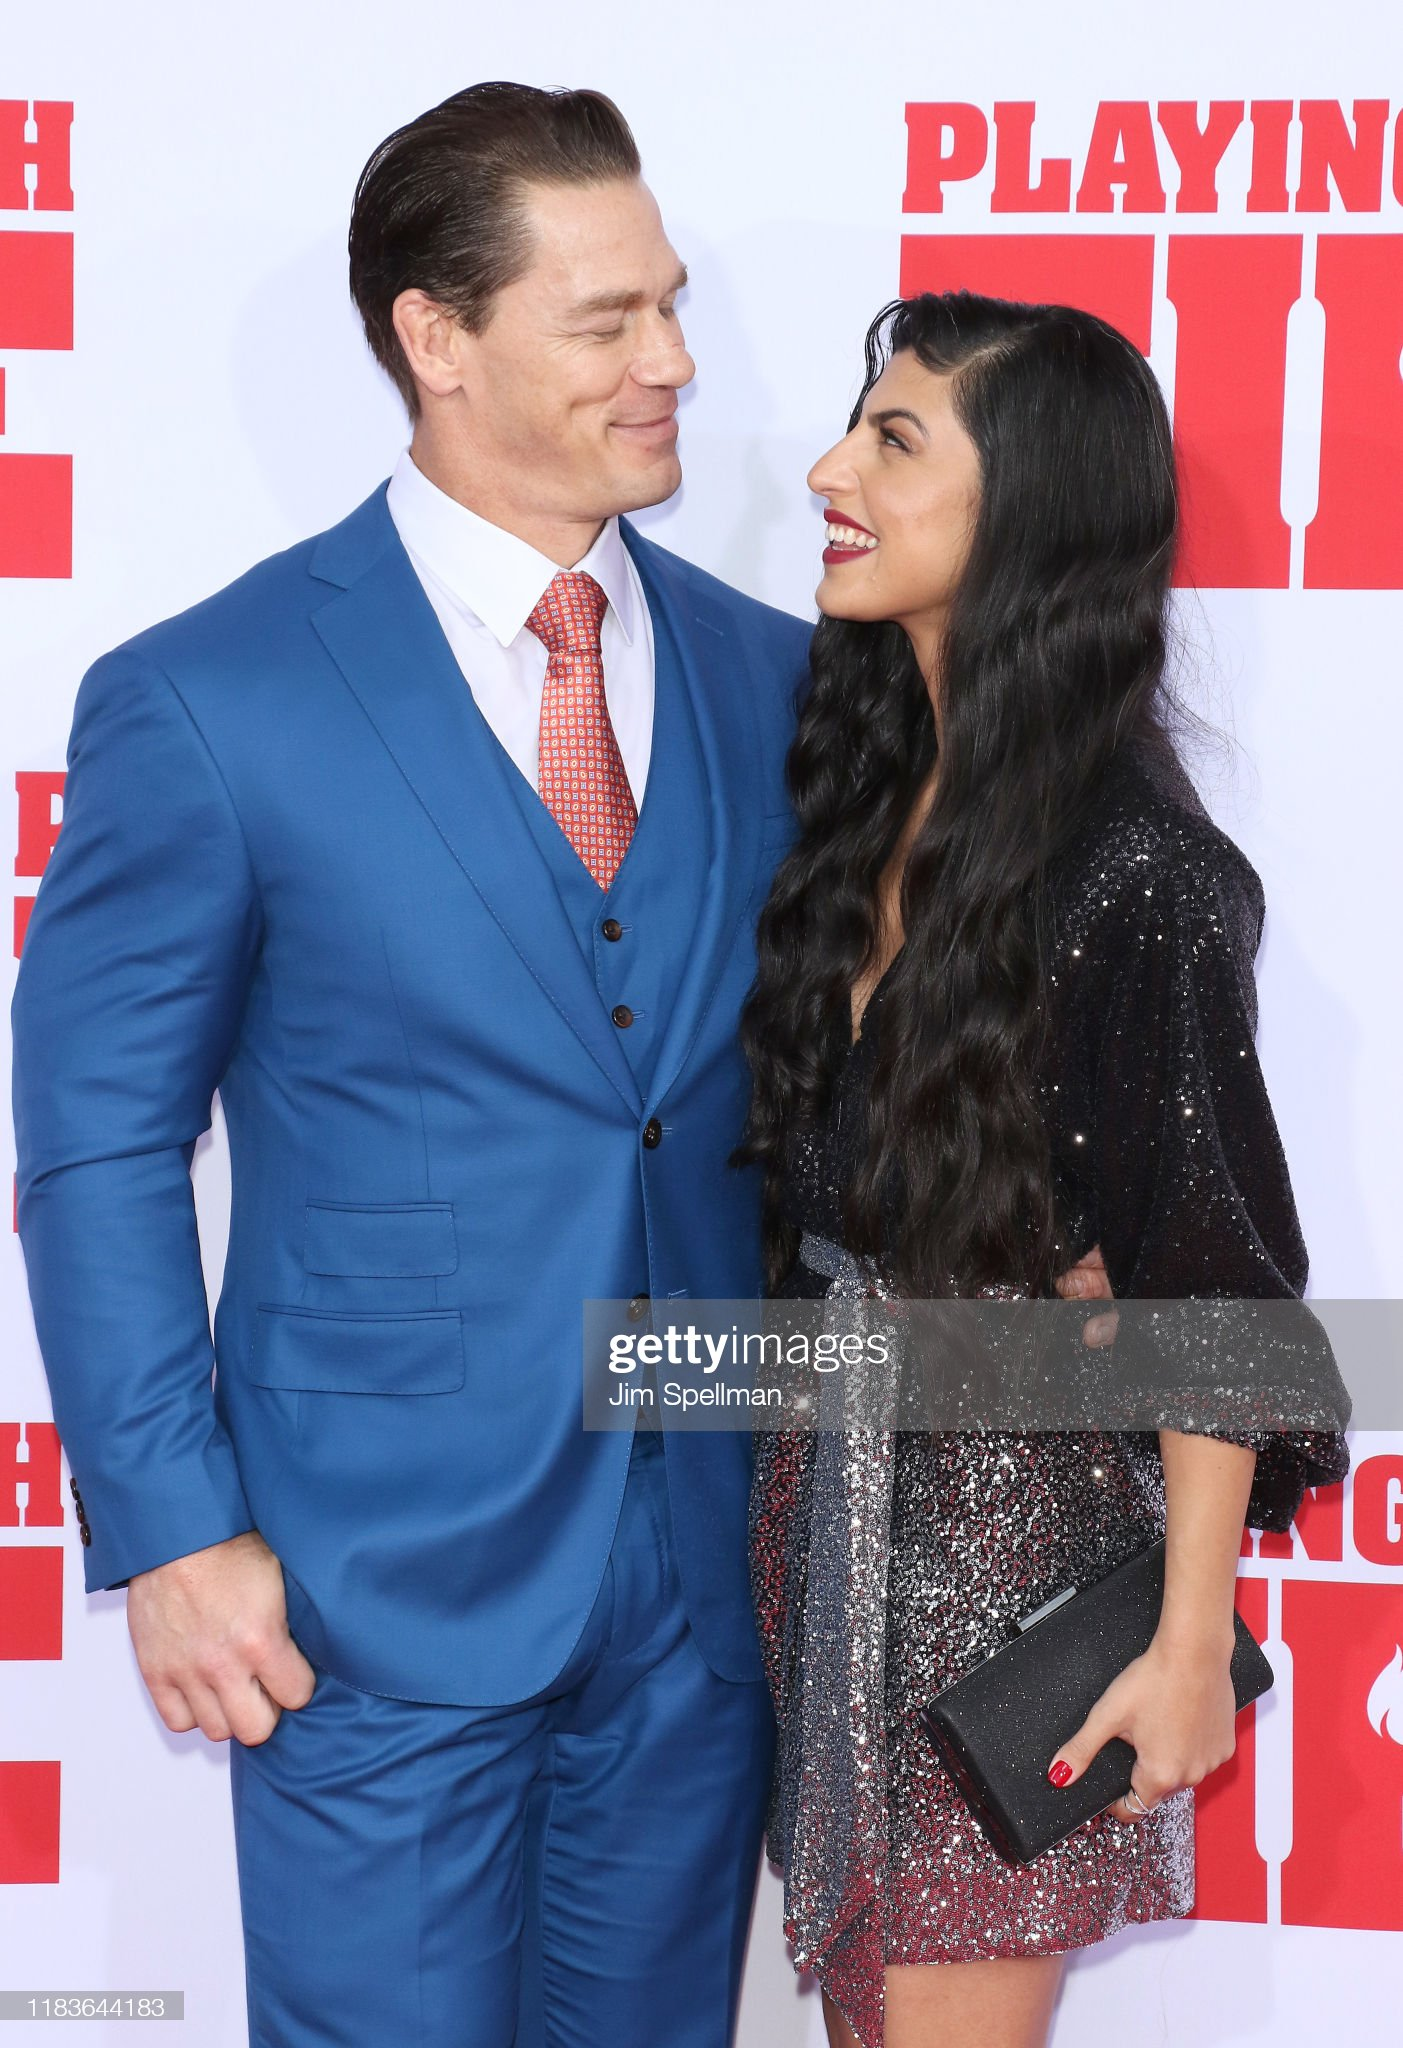 John Cena 42 Gf Shay Shariatzadeh 30 At The Premiere